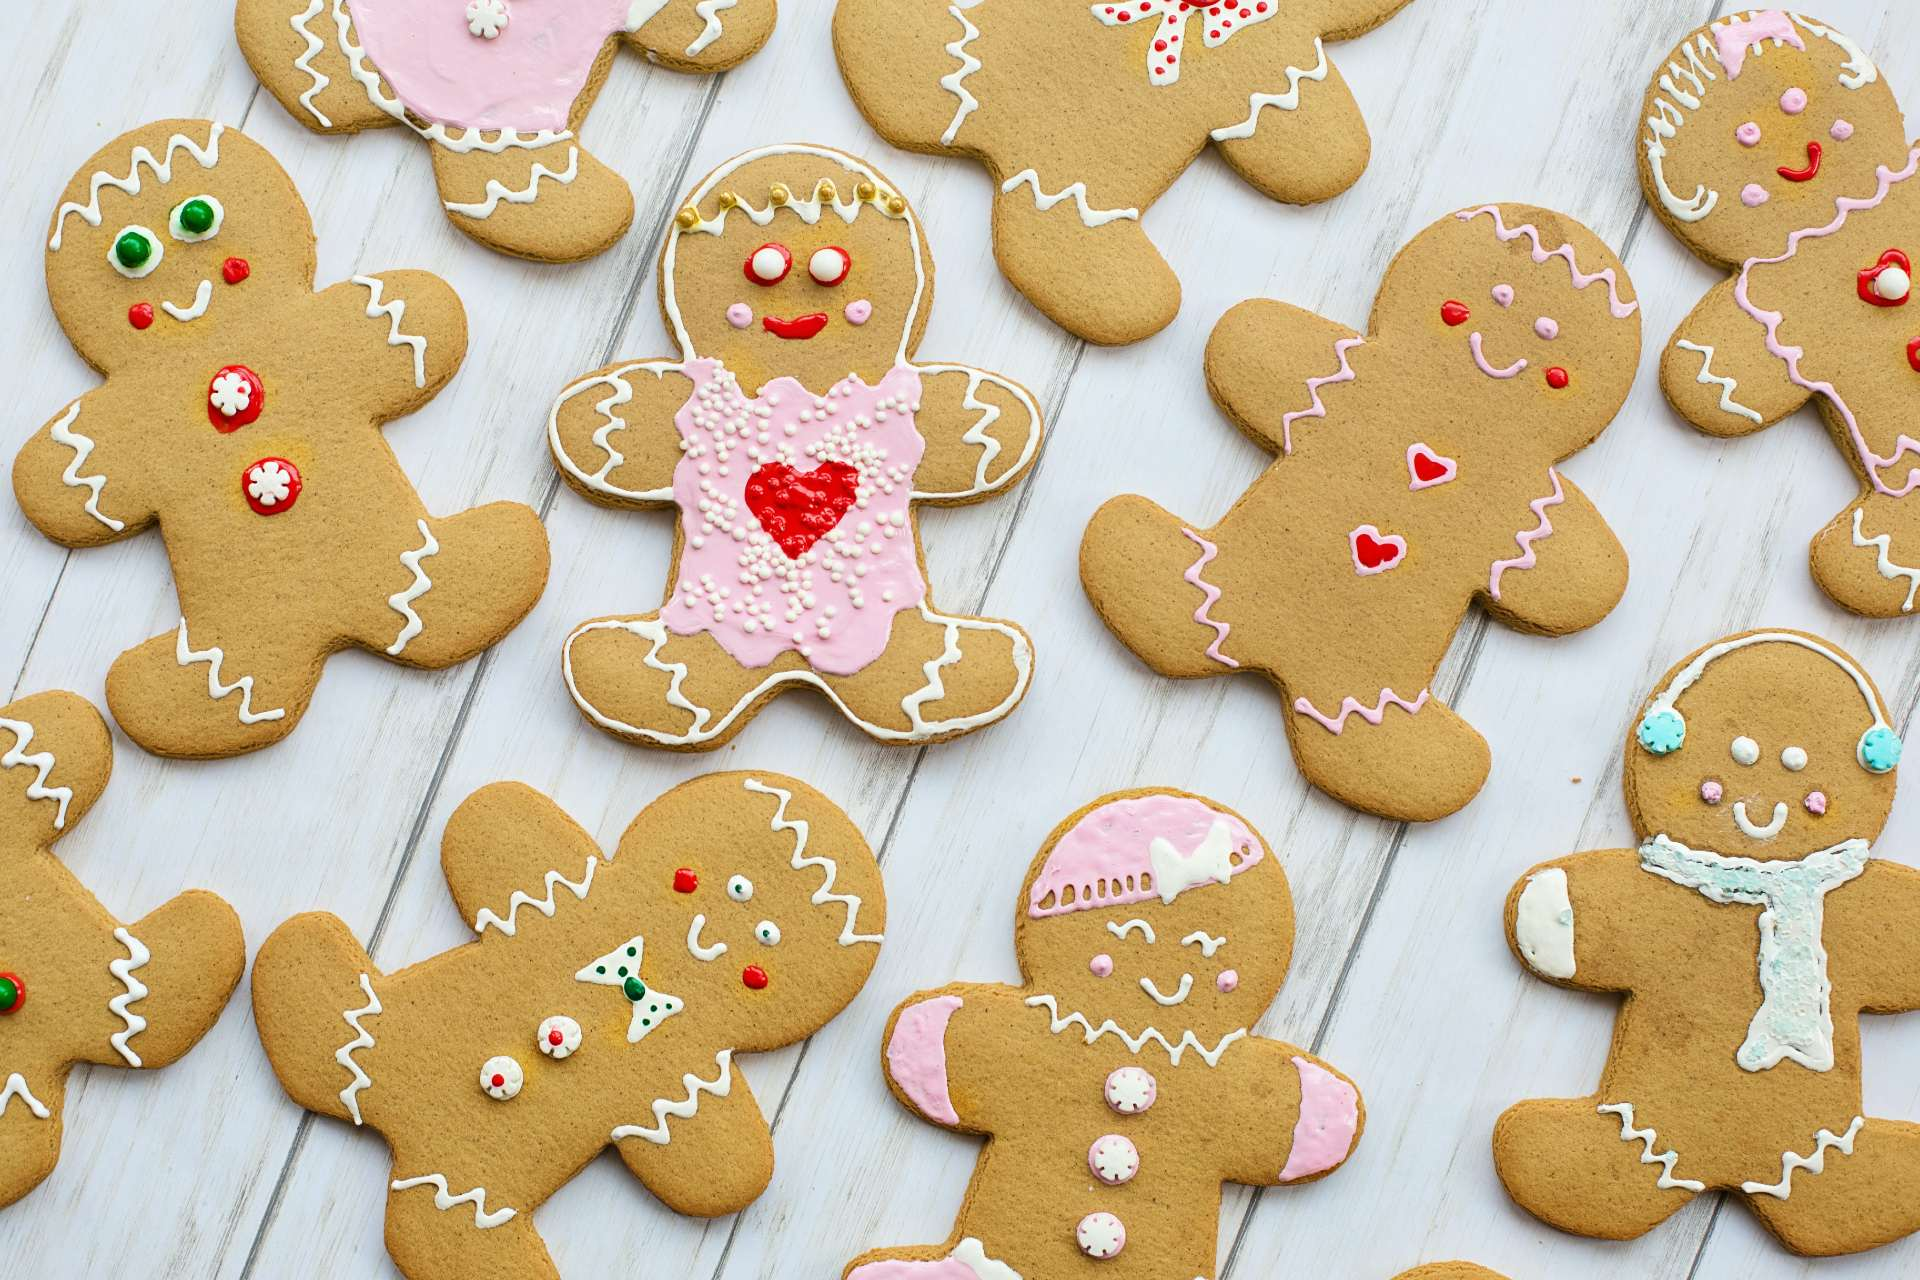 gingerbread_men - jill wellington / pexels